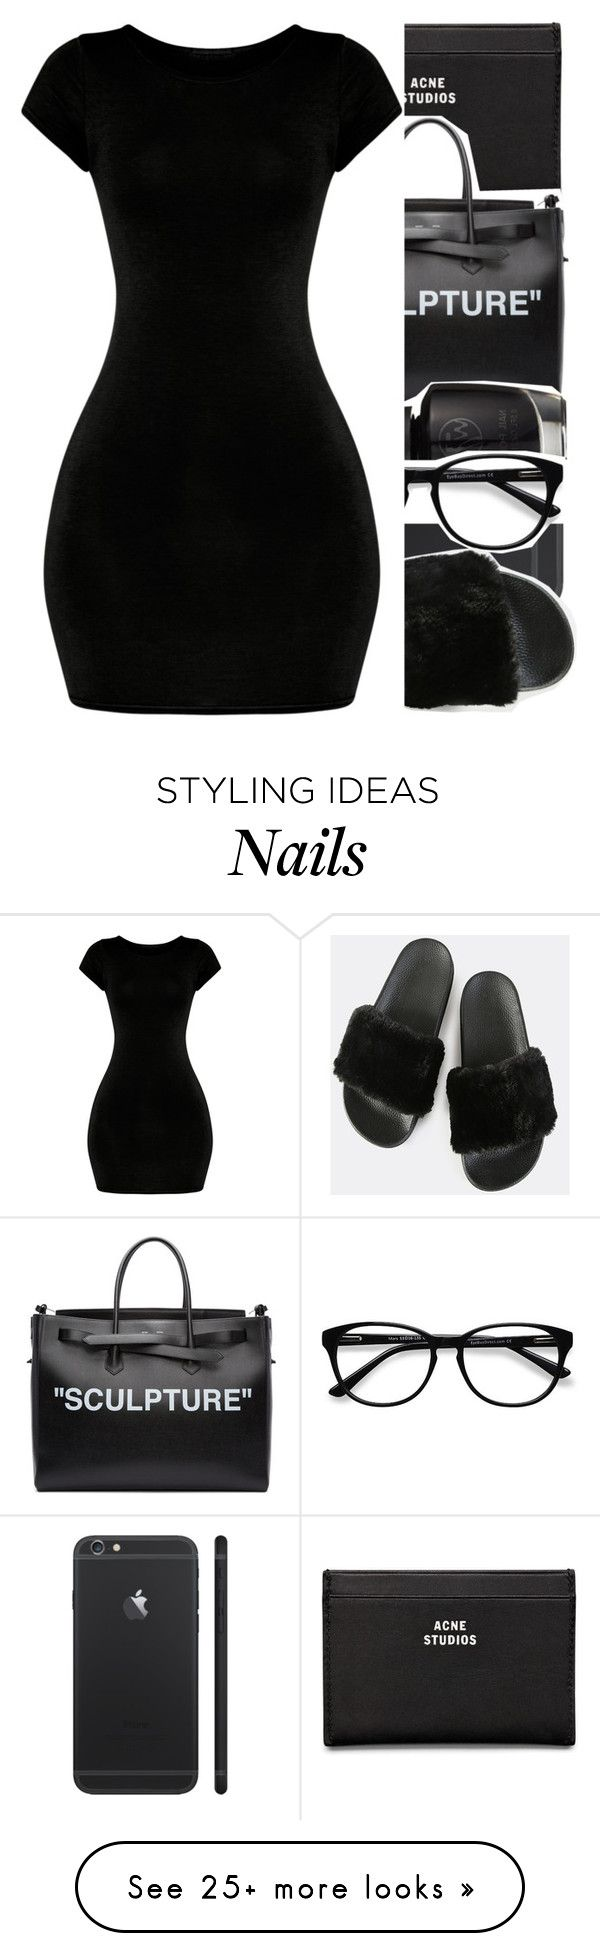 """."" by afrobby on Polyvore featuring Acne Studios, Off-White and EyeBuyDirect.com"